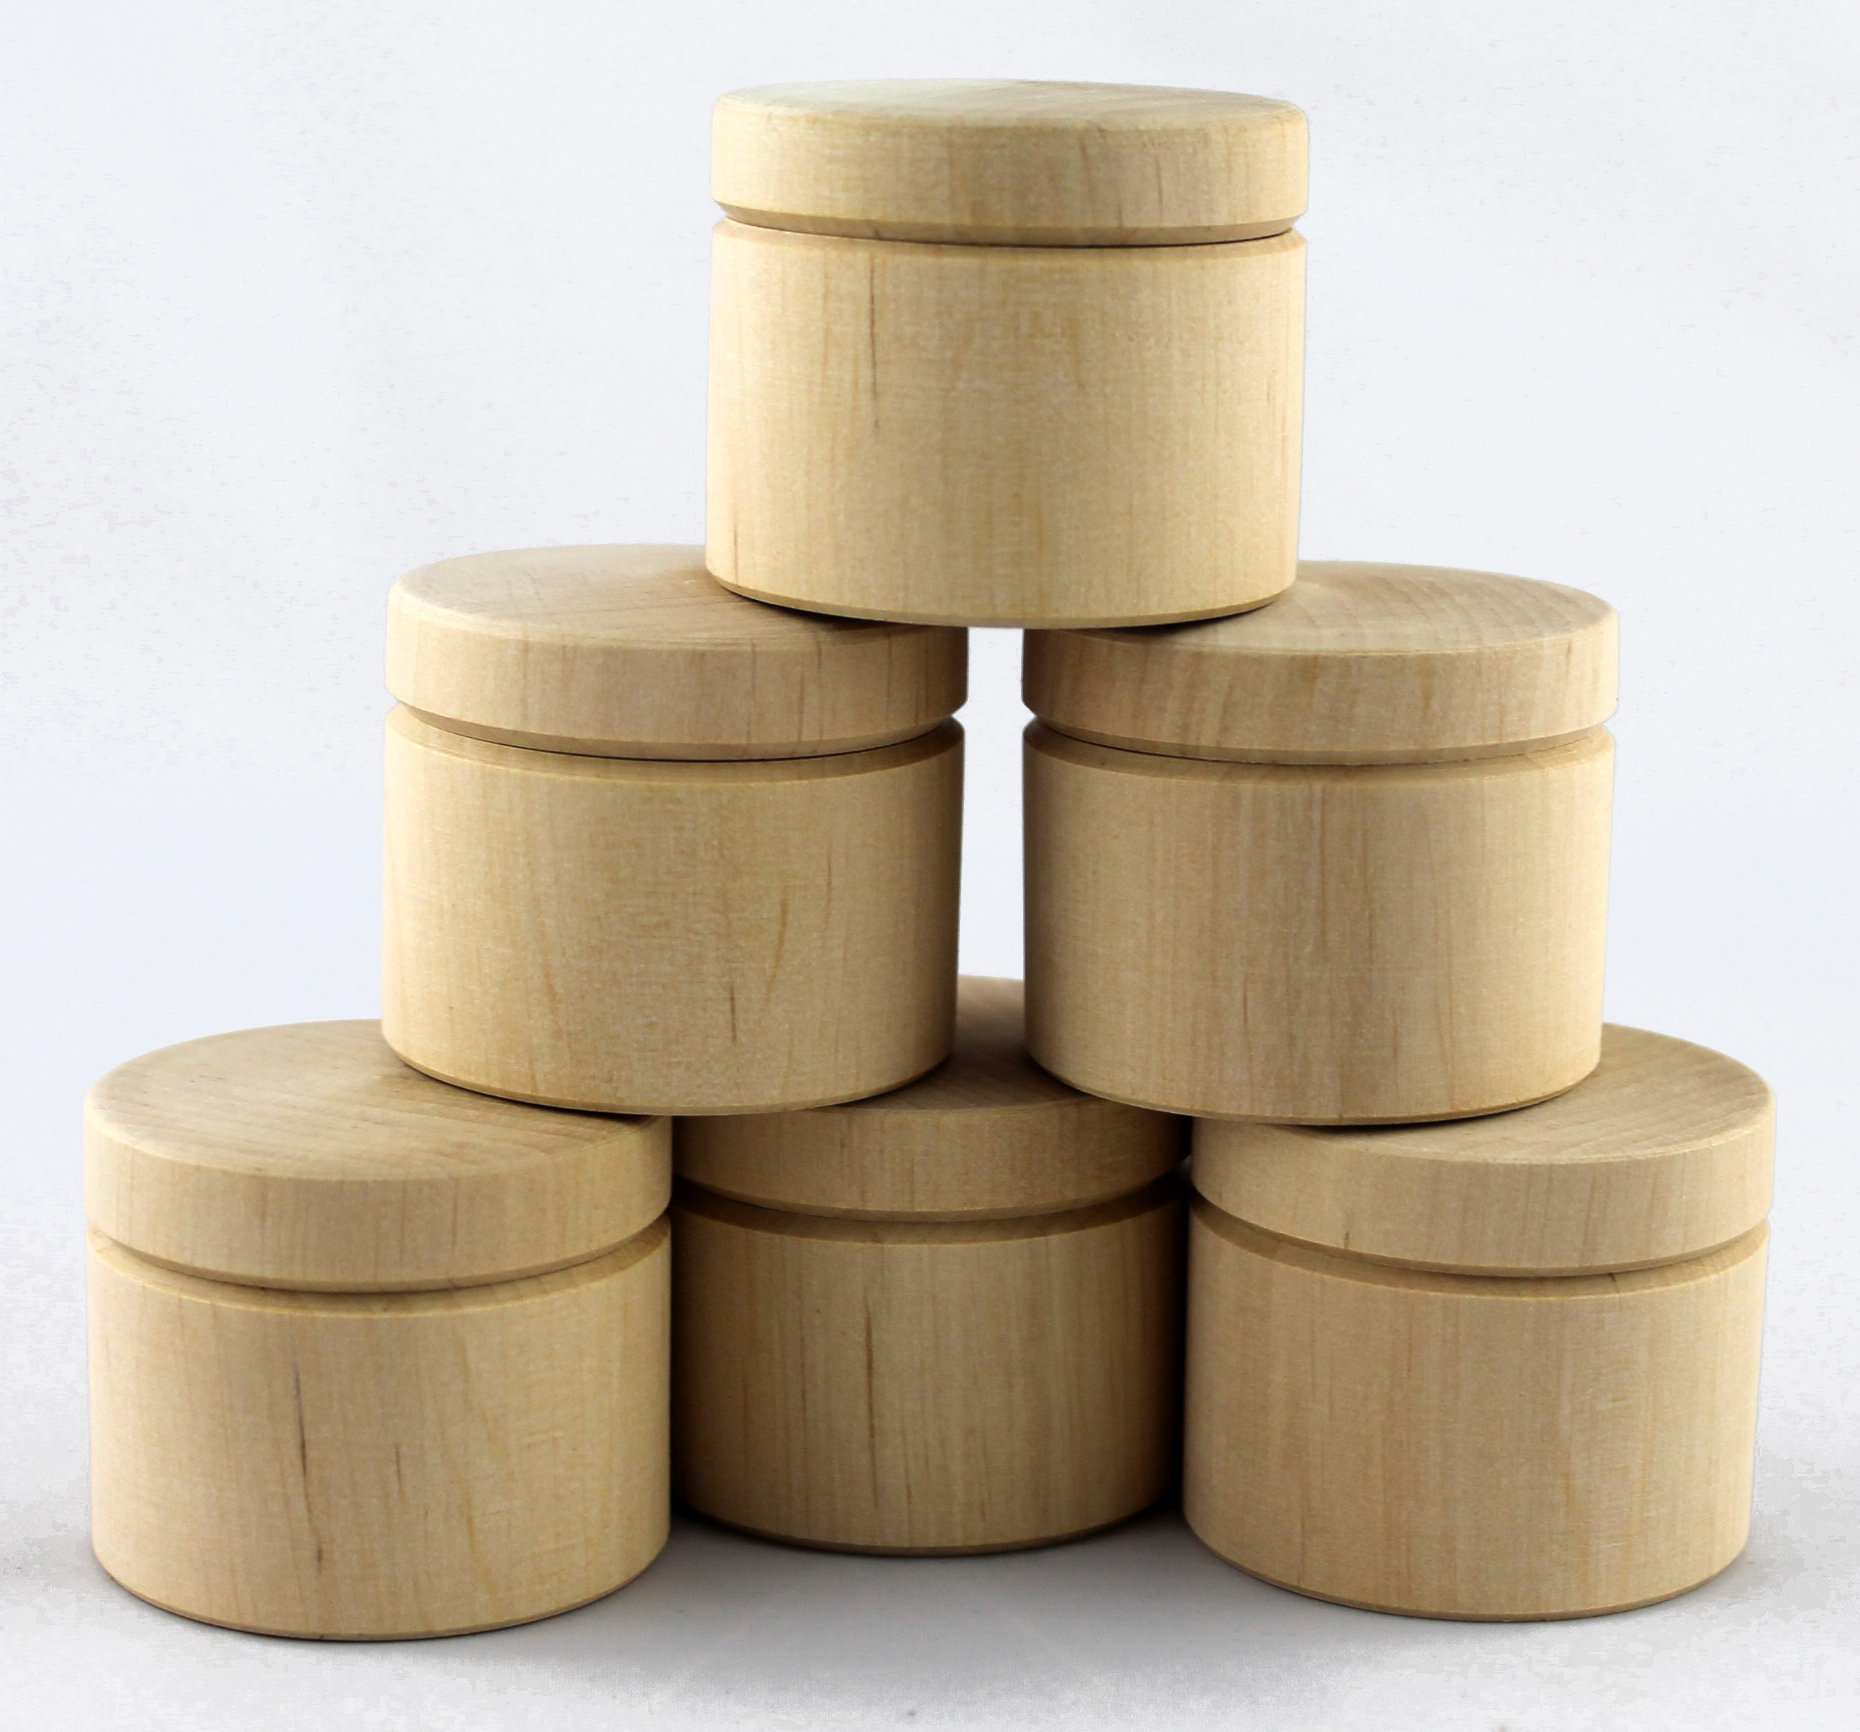 Lot 6 Handmade Unfinished Small Wooden Boxes Wholesale Wood Craft Boxes